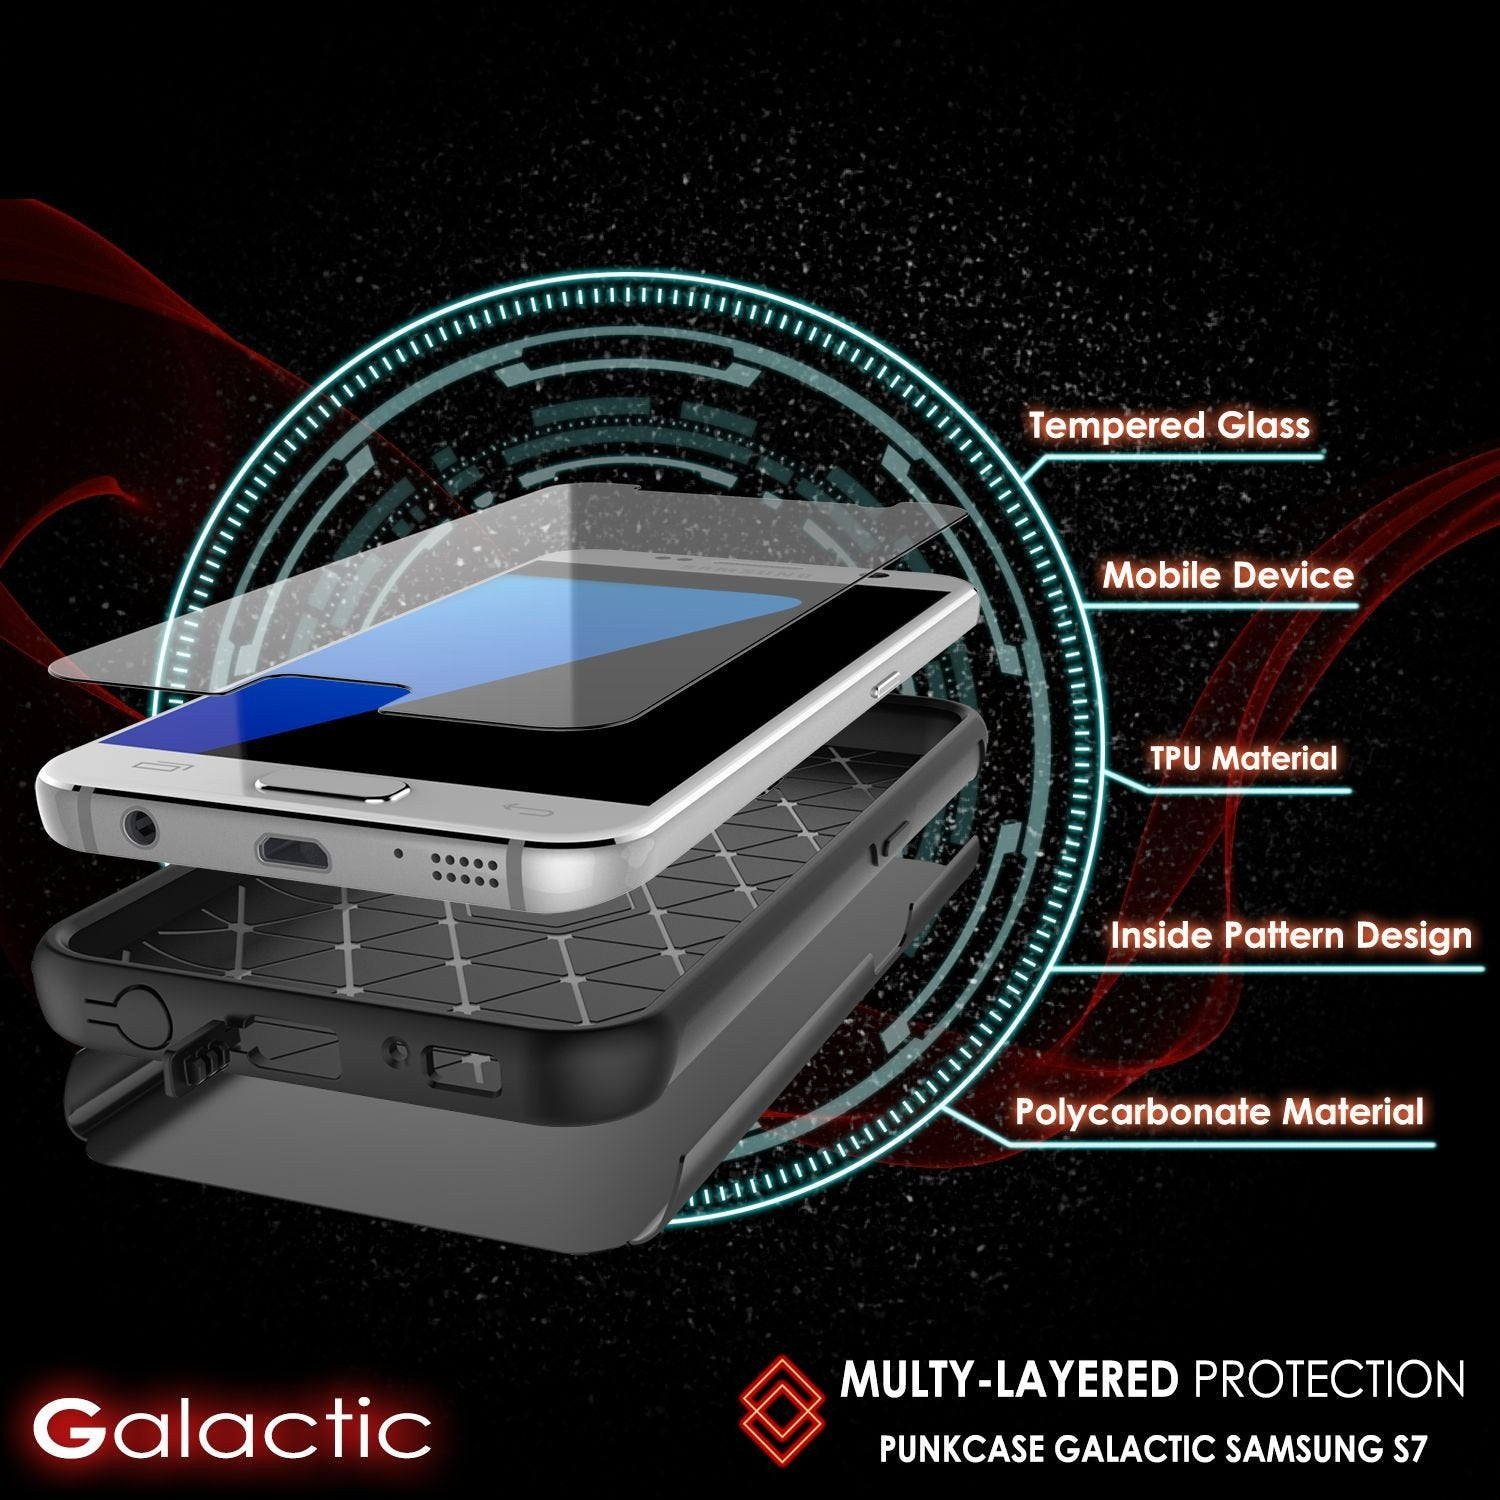 Galaxy s7 Case PunkCase Galactic Black Series Slim Armor Soft Cover Case w/ Tempered Glass